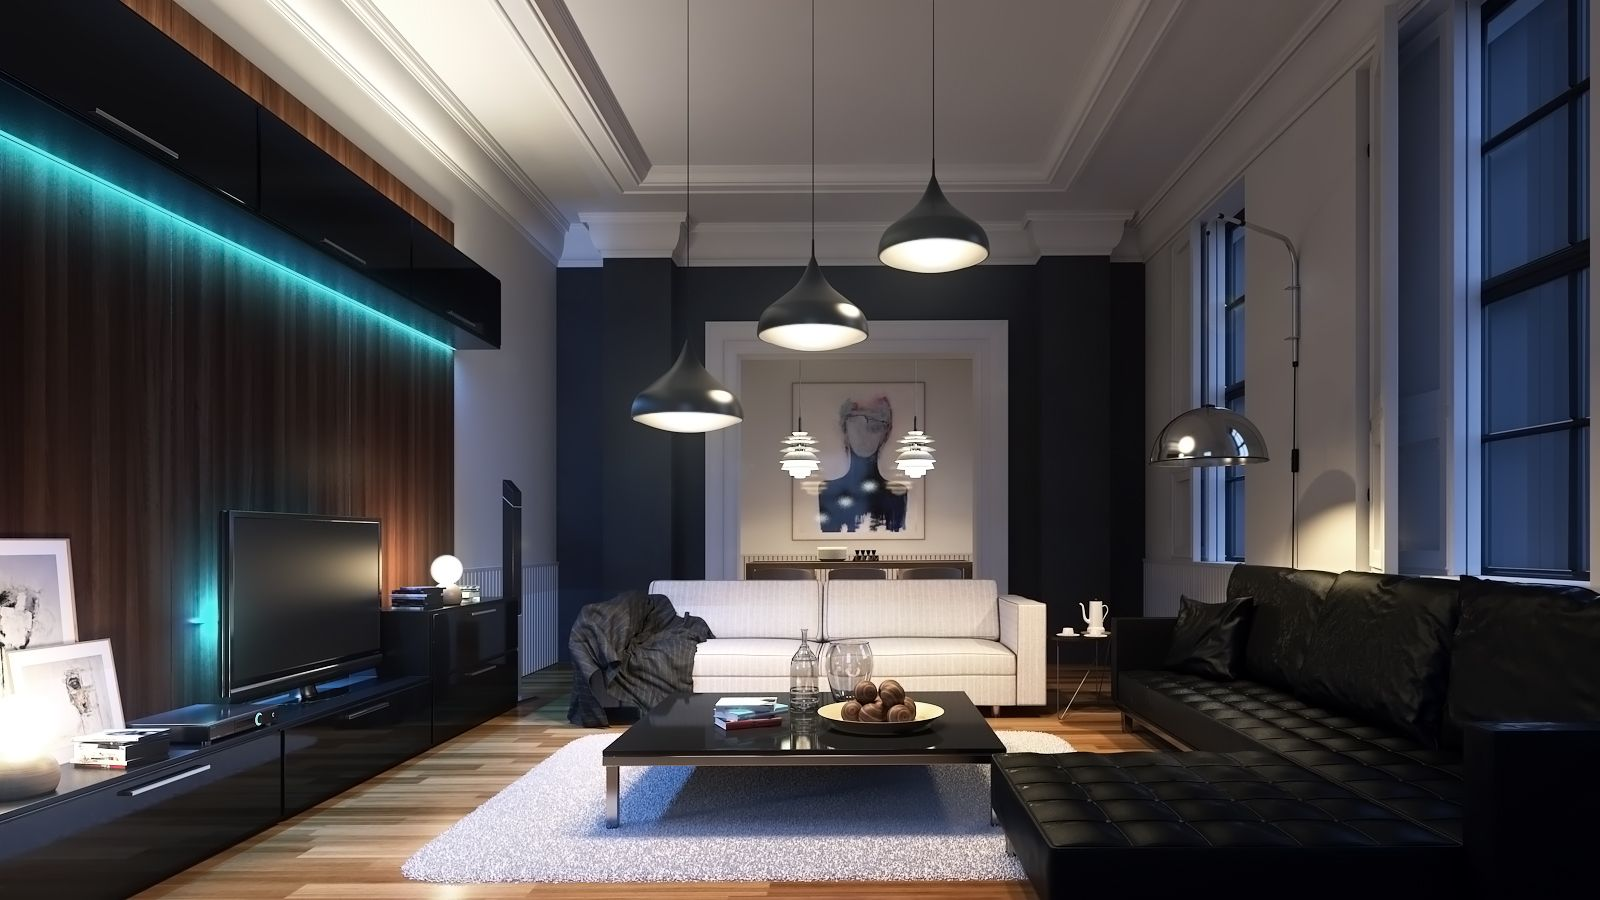 Vray 3ds max night interior making of part 1 vray 3d interior design online